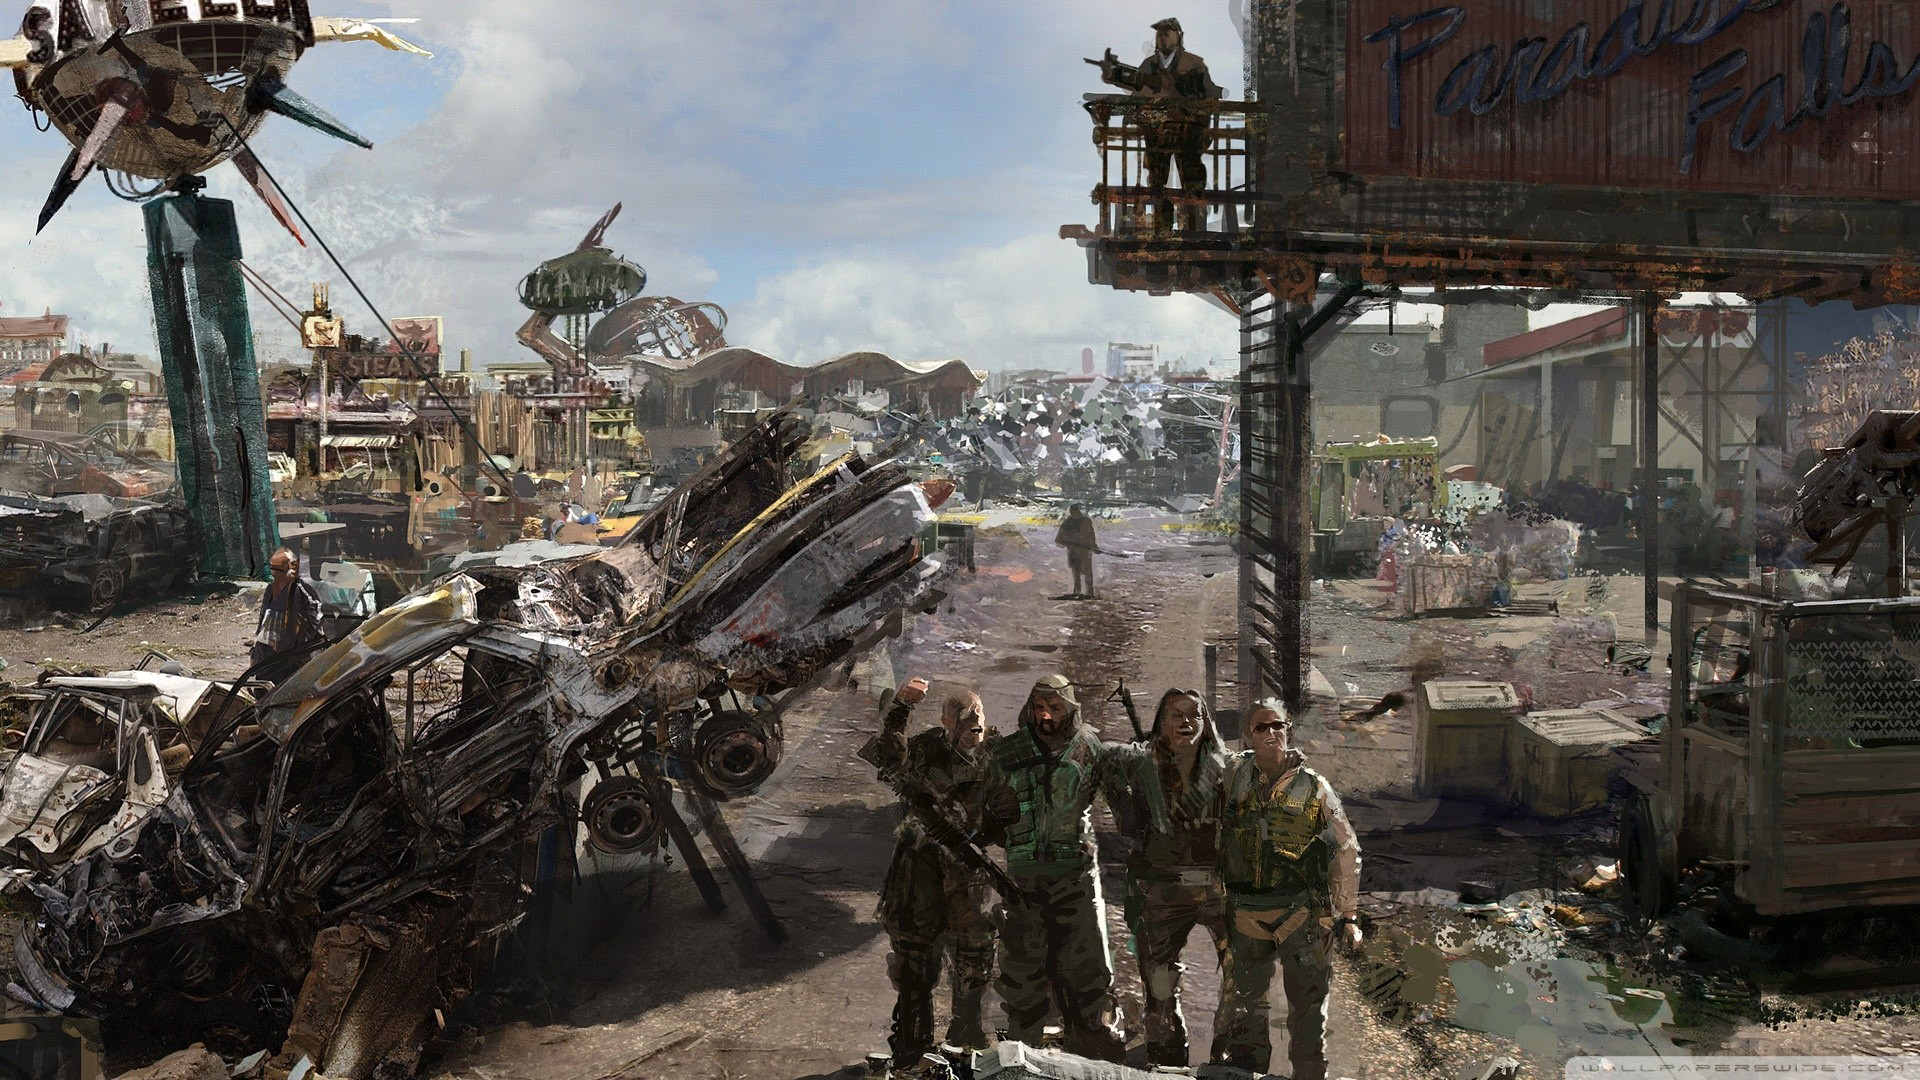 fallout_3_game_scene-wallpaper-1920×1080-by-acer_9876